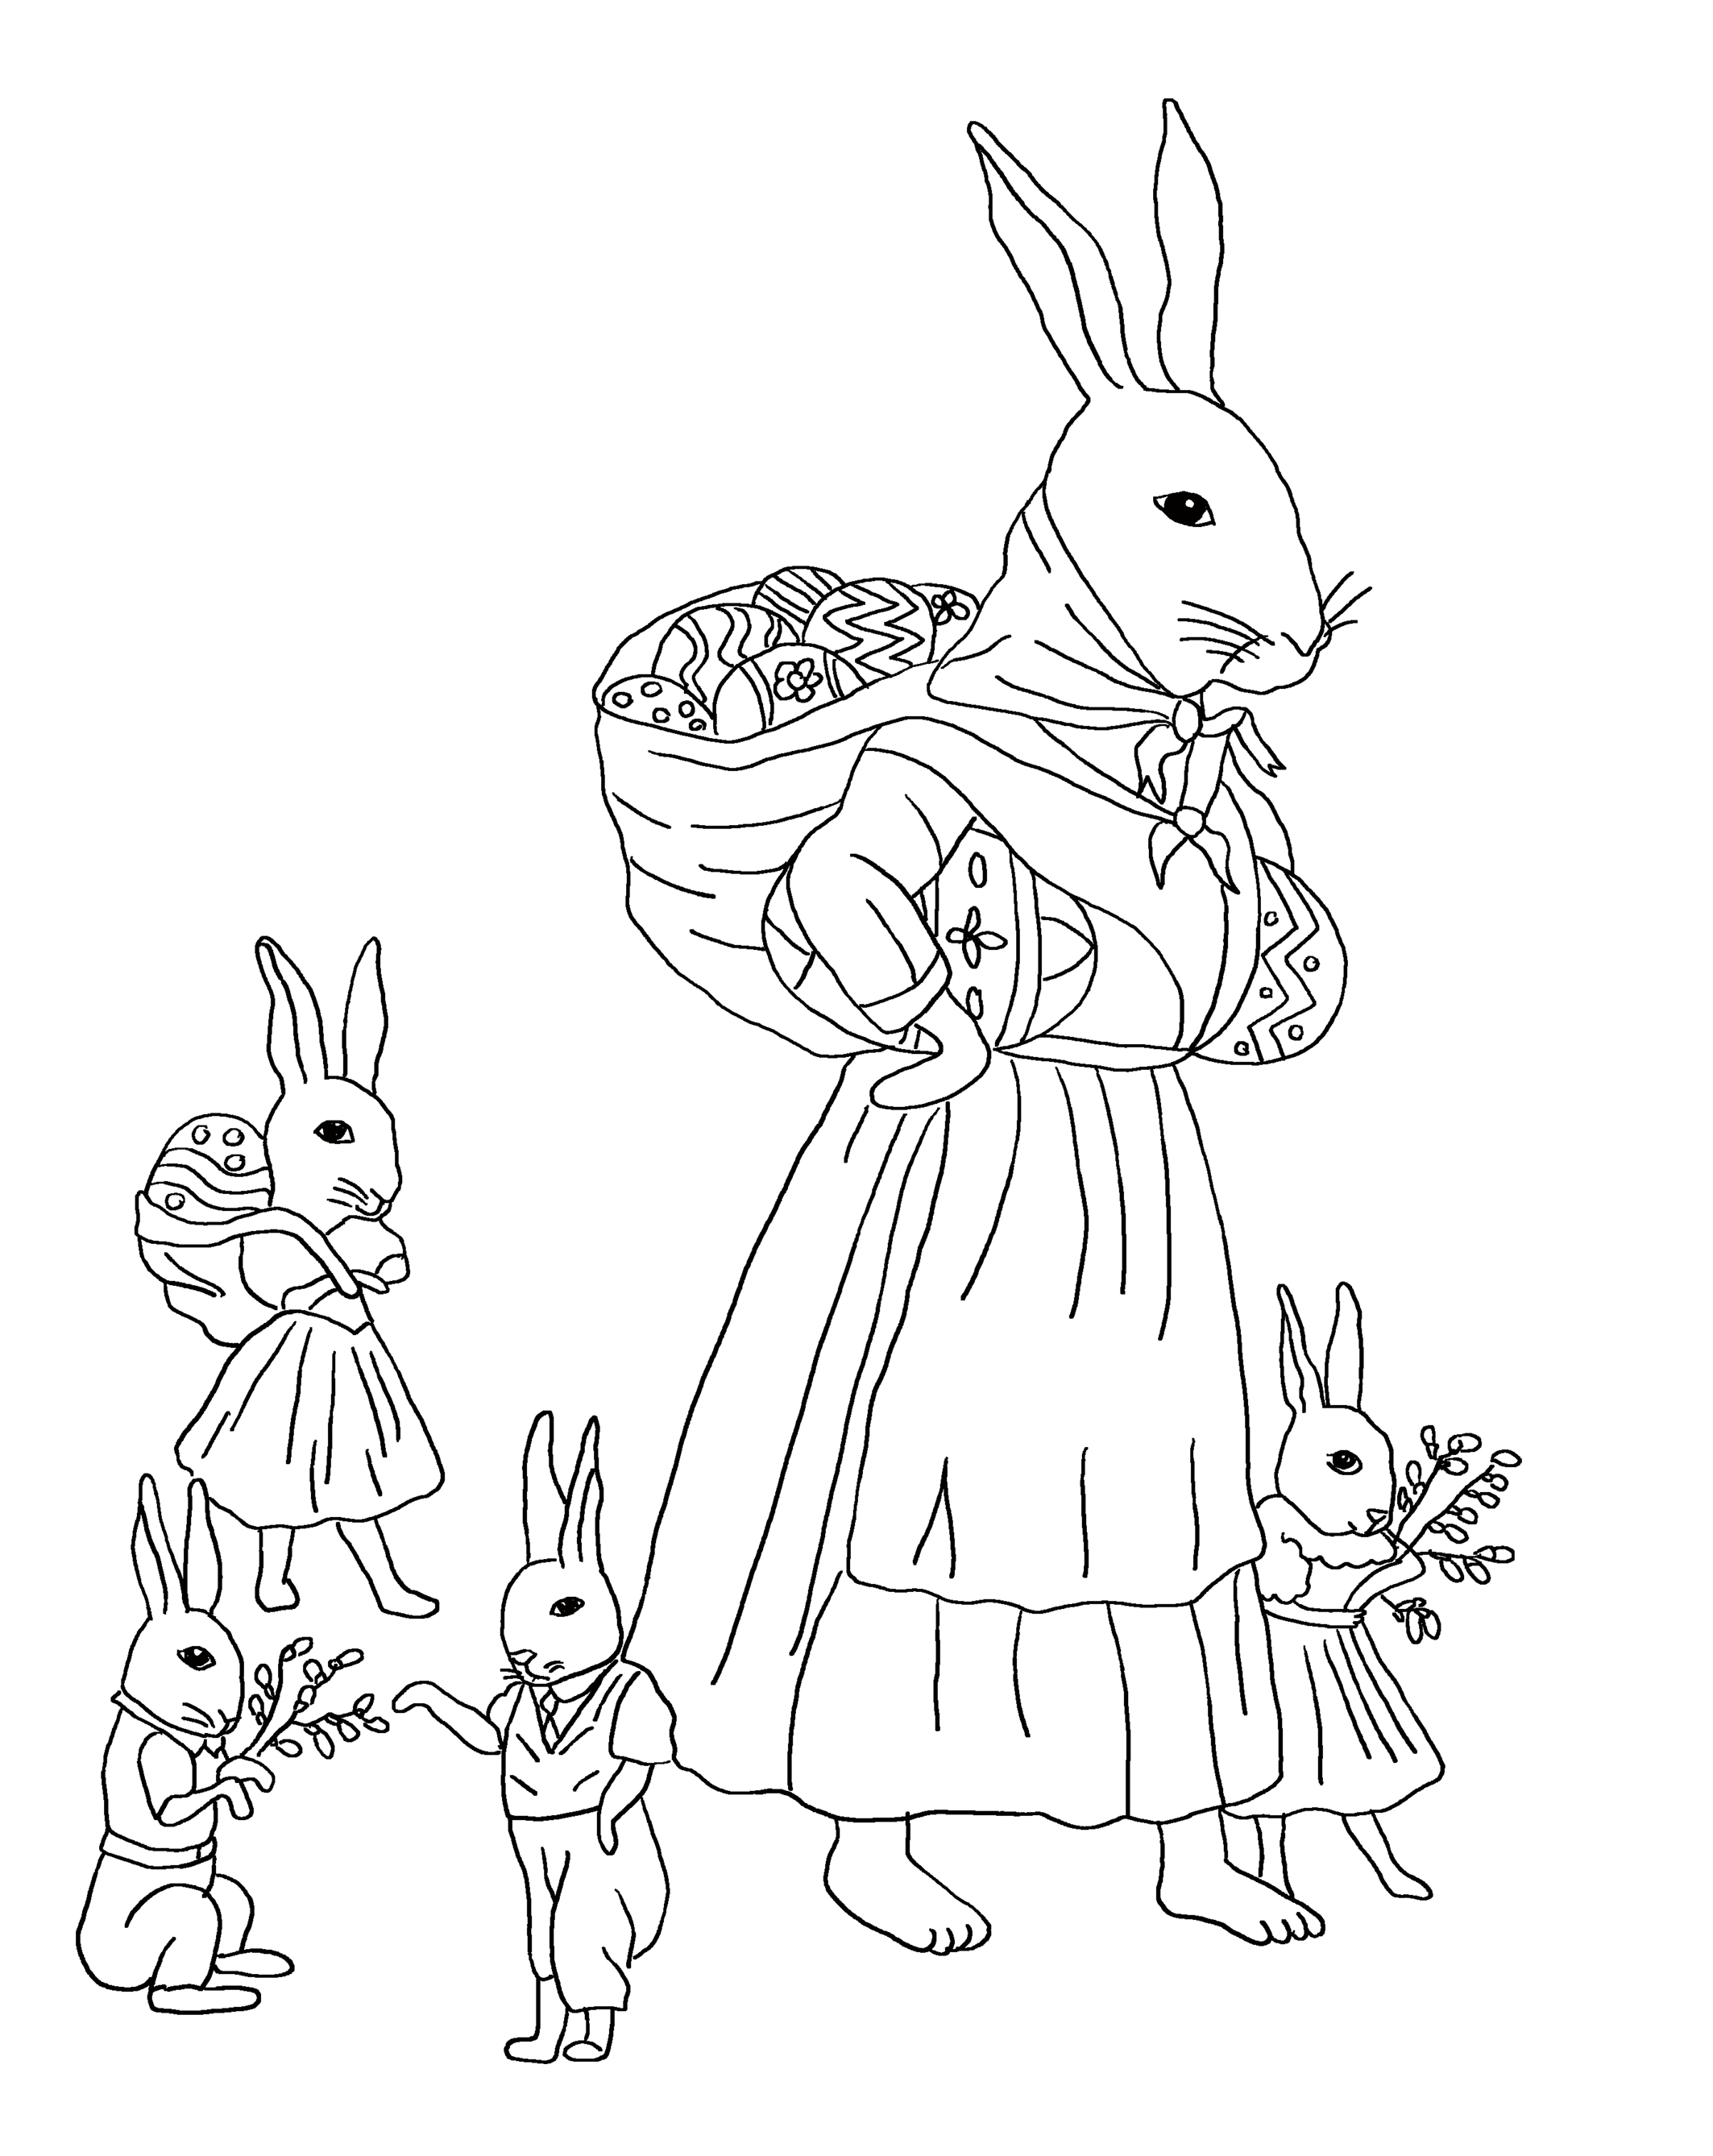 Easter coloring page with Easter bunnies with eggs and branches.